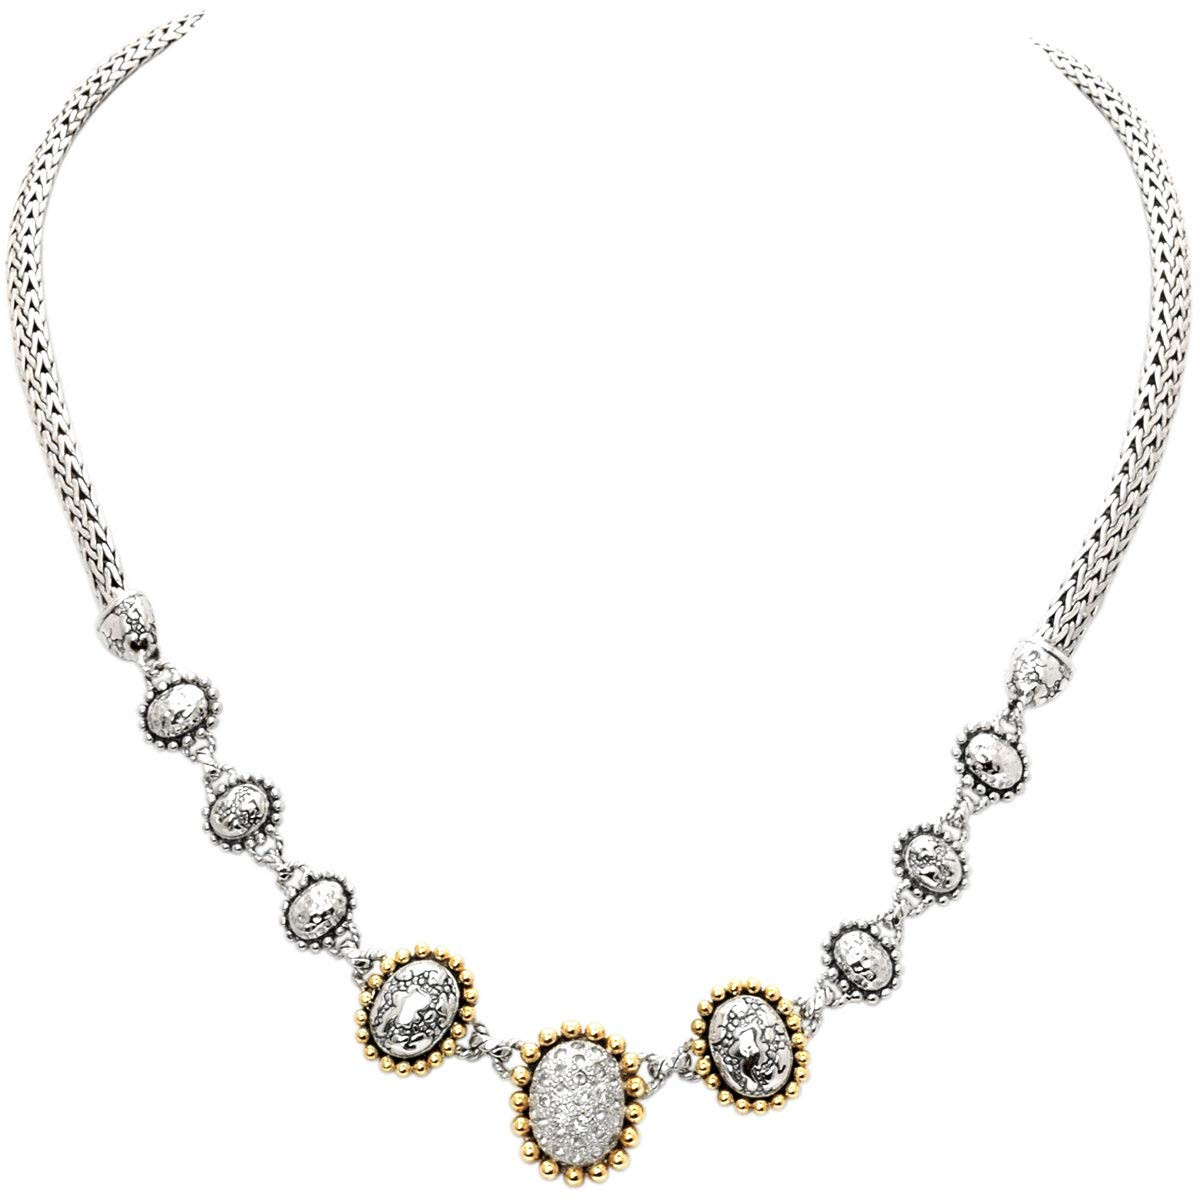 Deni Jewelry 18 Kt Yellow Gold Bezel and 925 Sterling Silver Necklace with Balinese Sunflower Motif and White Topaz Stone Pave Setting with Tulang Naga Chain Oval 3x5 MM for Women and Jewelry Gift by Deni Jewelry